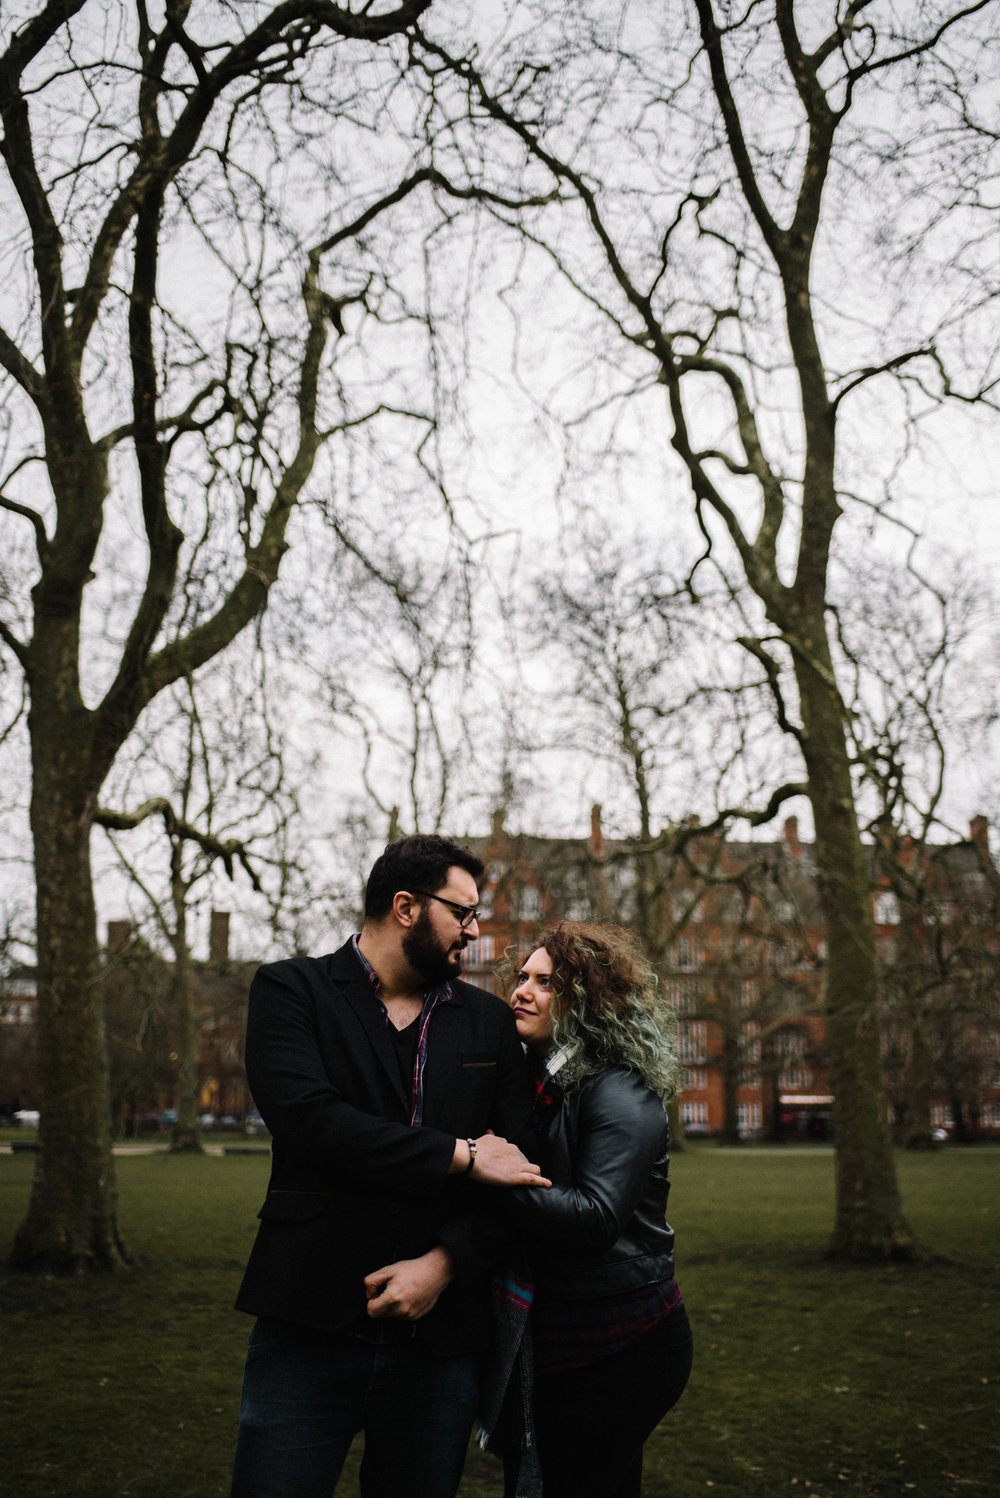 Lore and Rami Couple Portrait Session Hyde Park London England_11.JPG